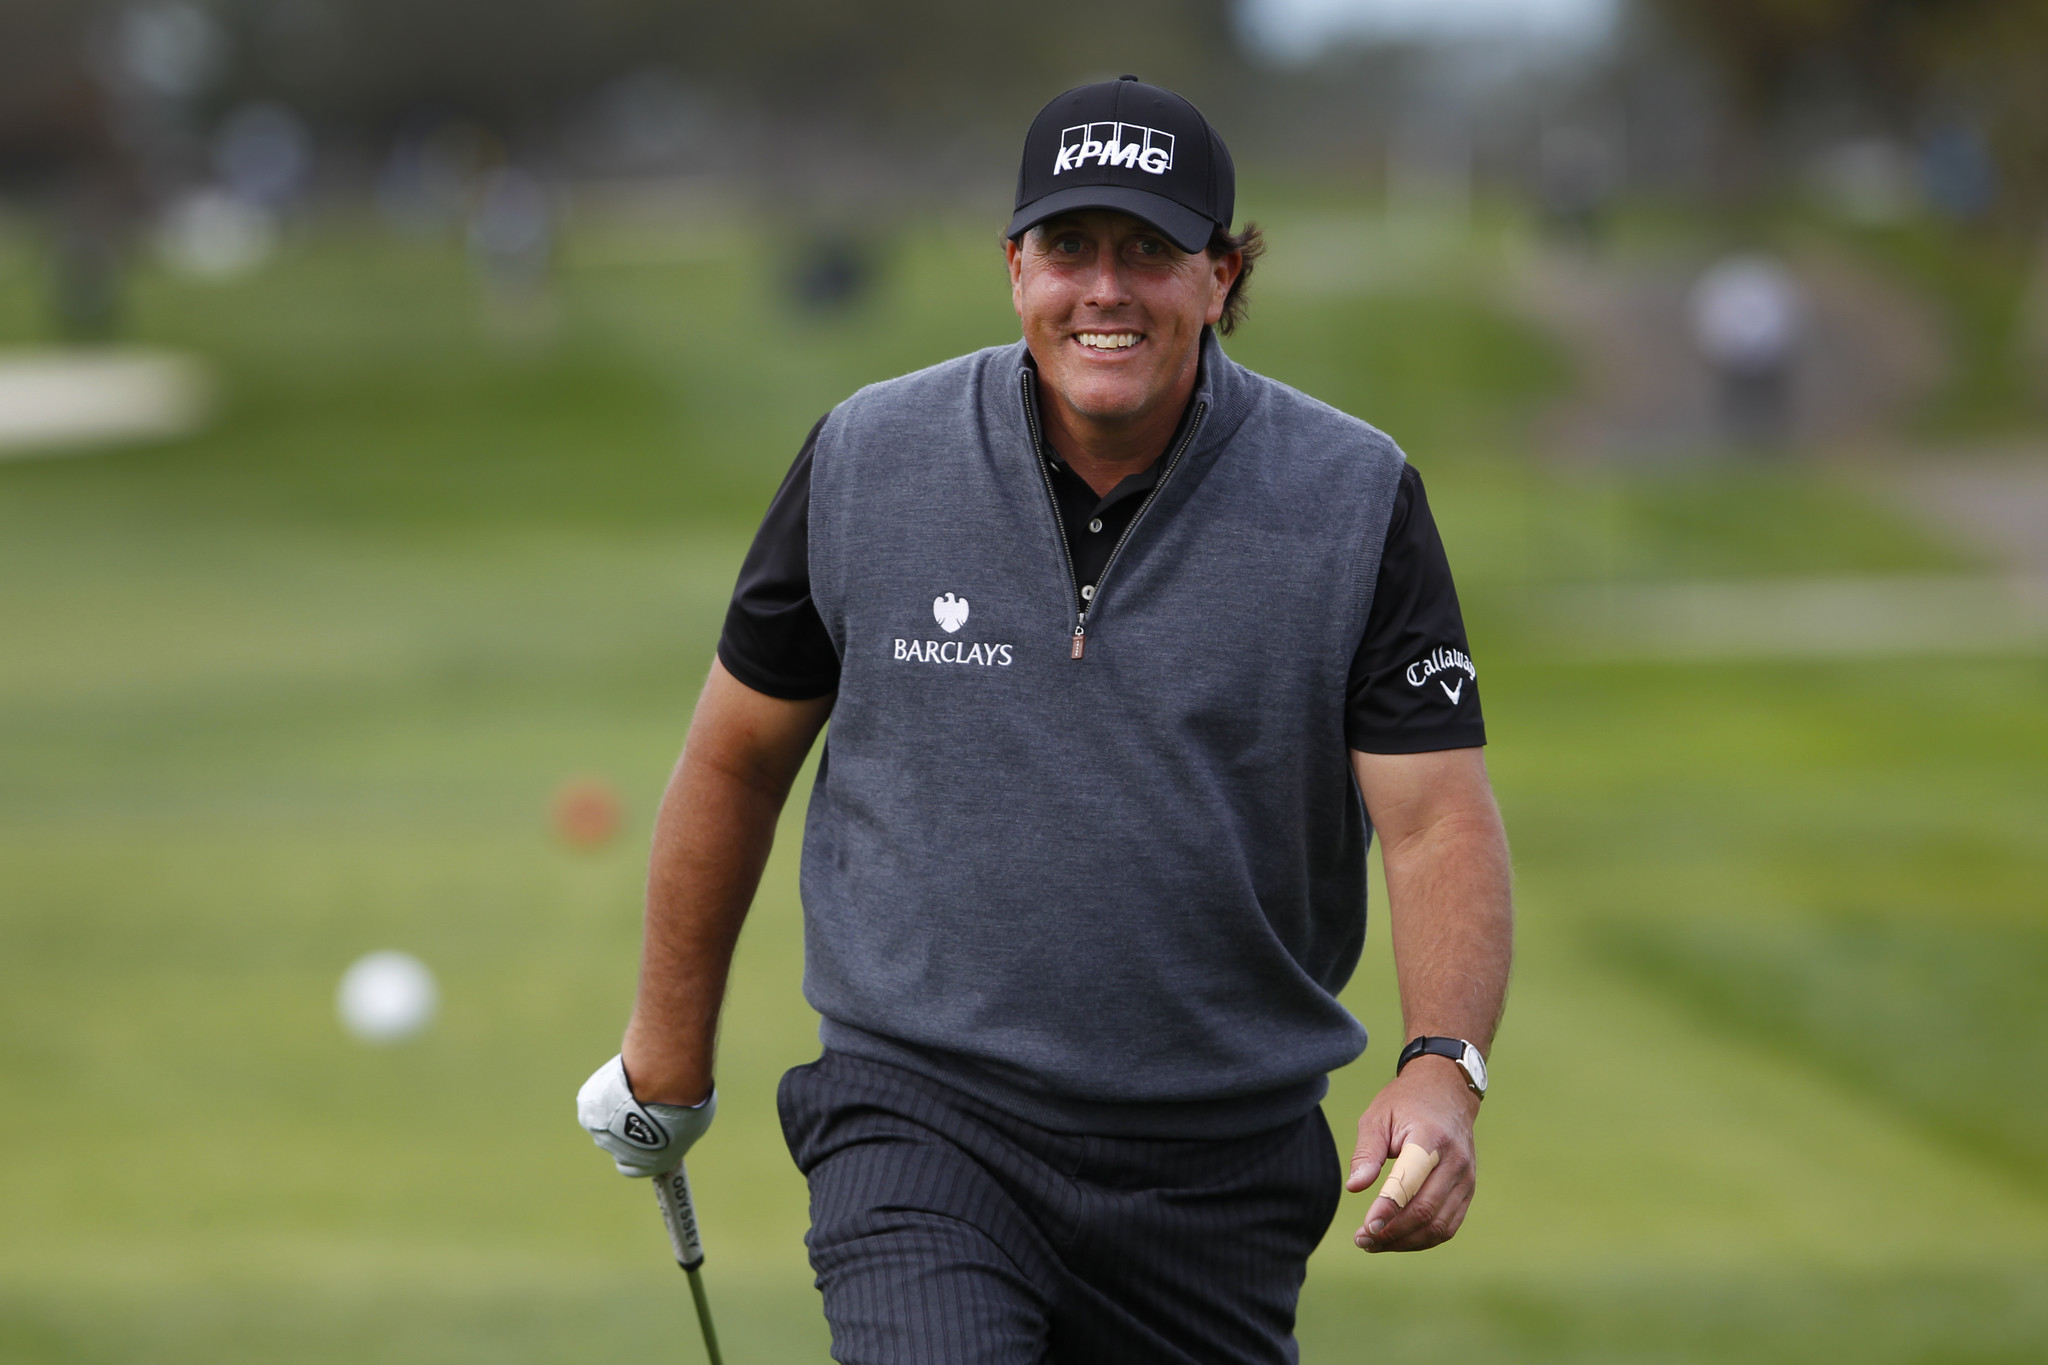 phil mickelson - photo #37